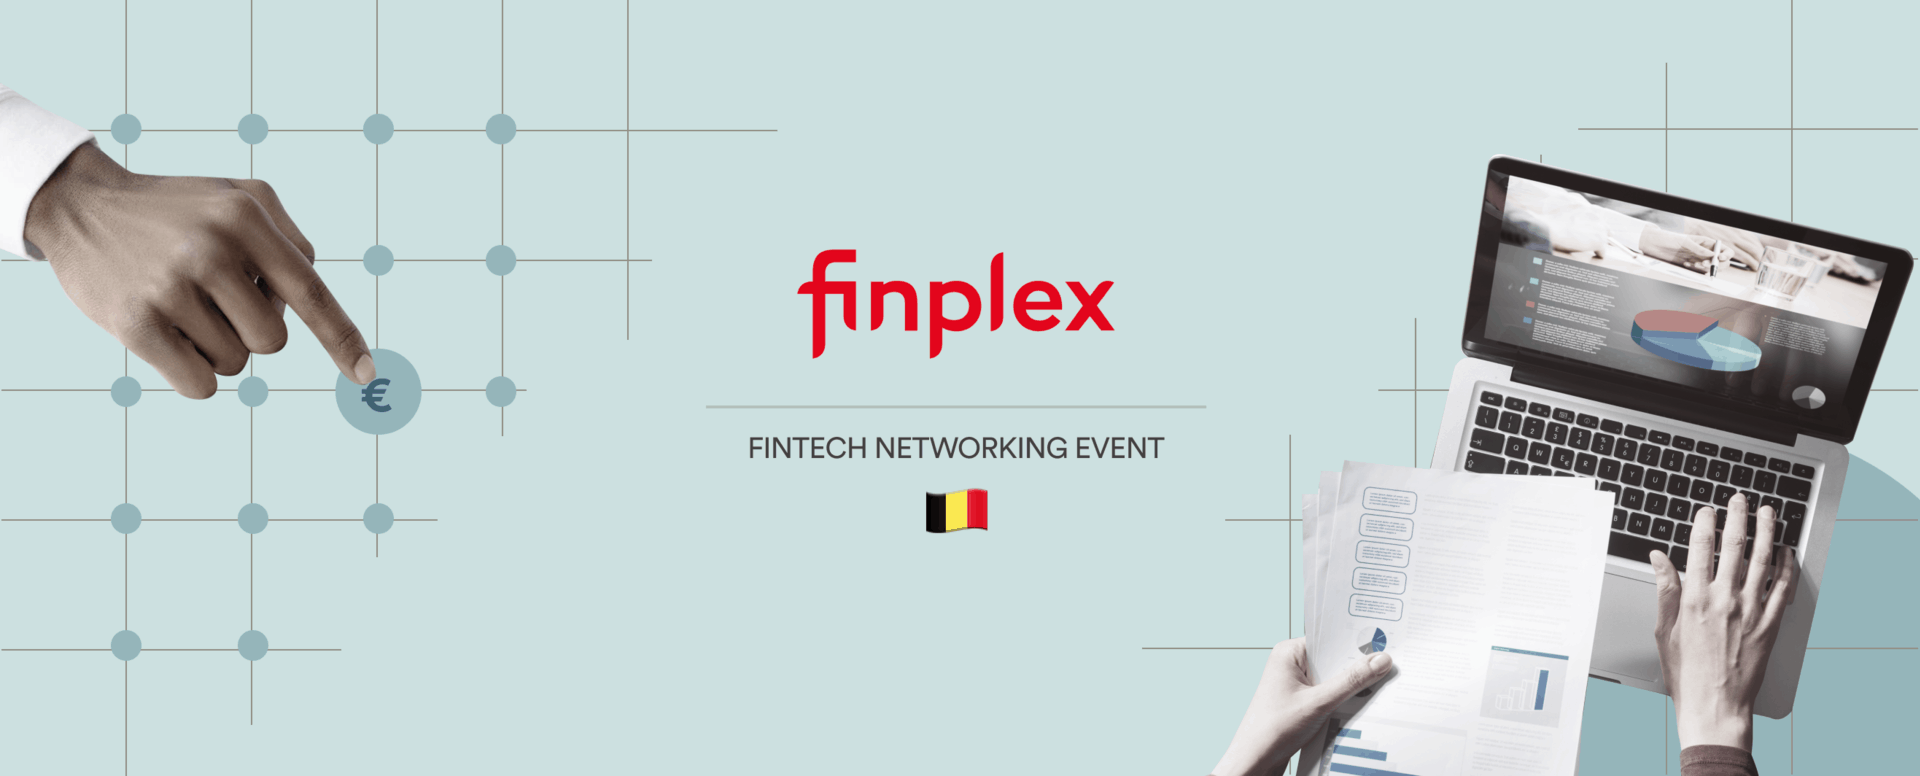 'Finplex' attracts 30 repeat sponsors through its deeply interactive virtual event hosted on Airmeet